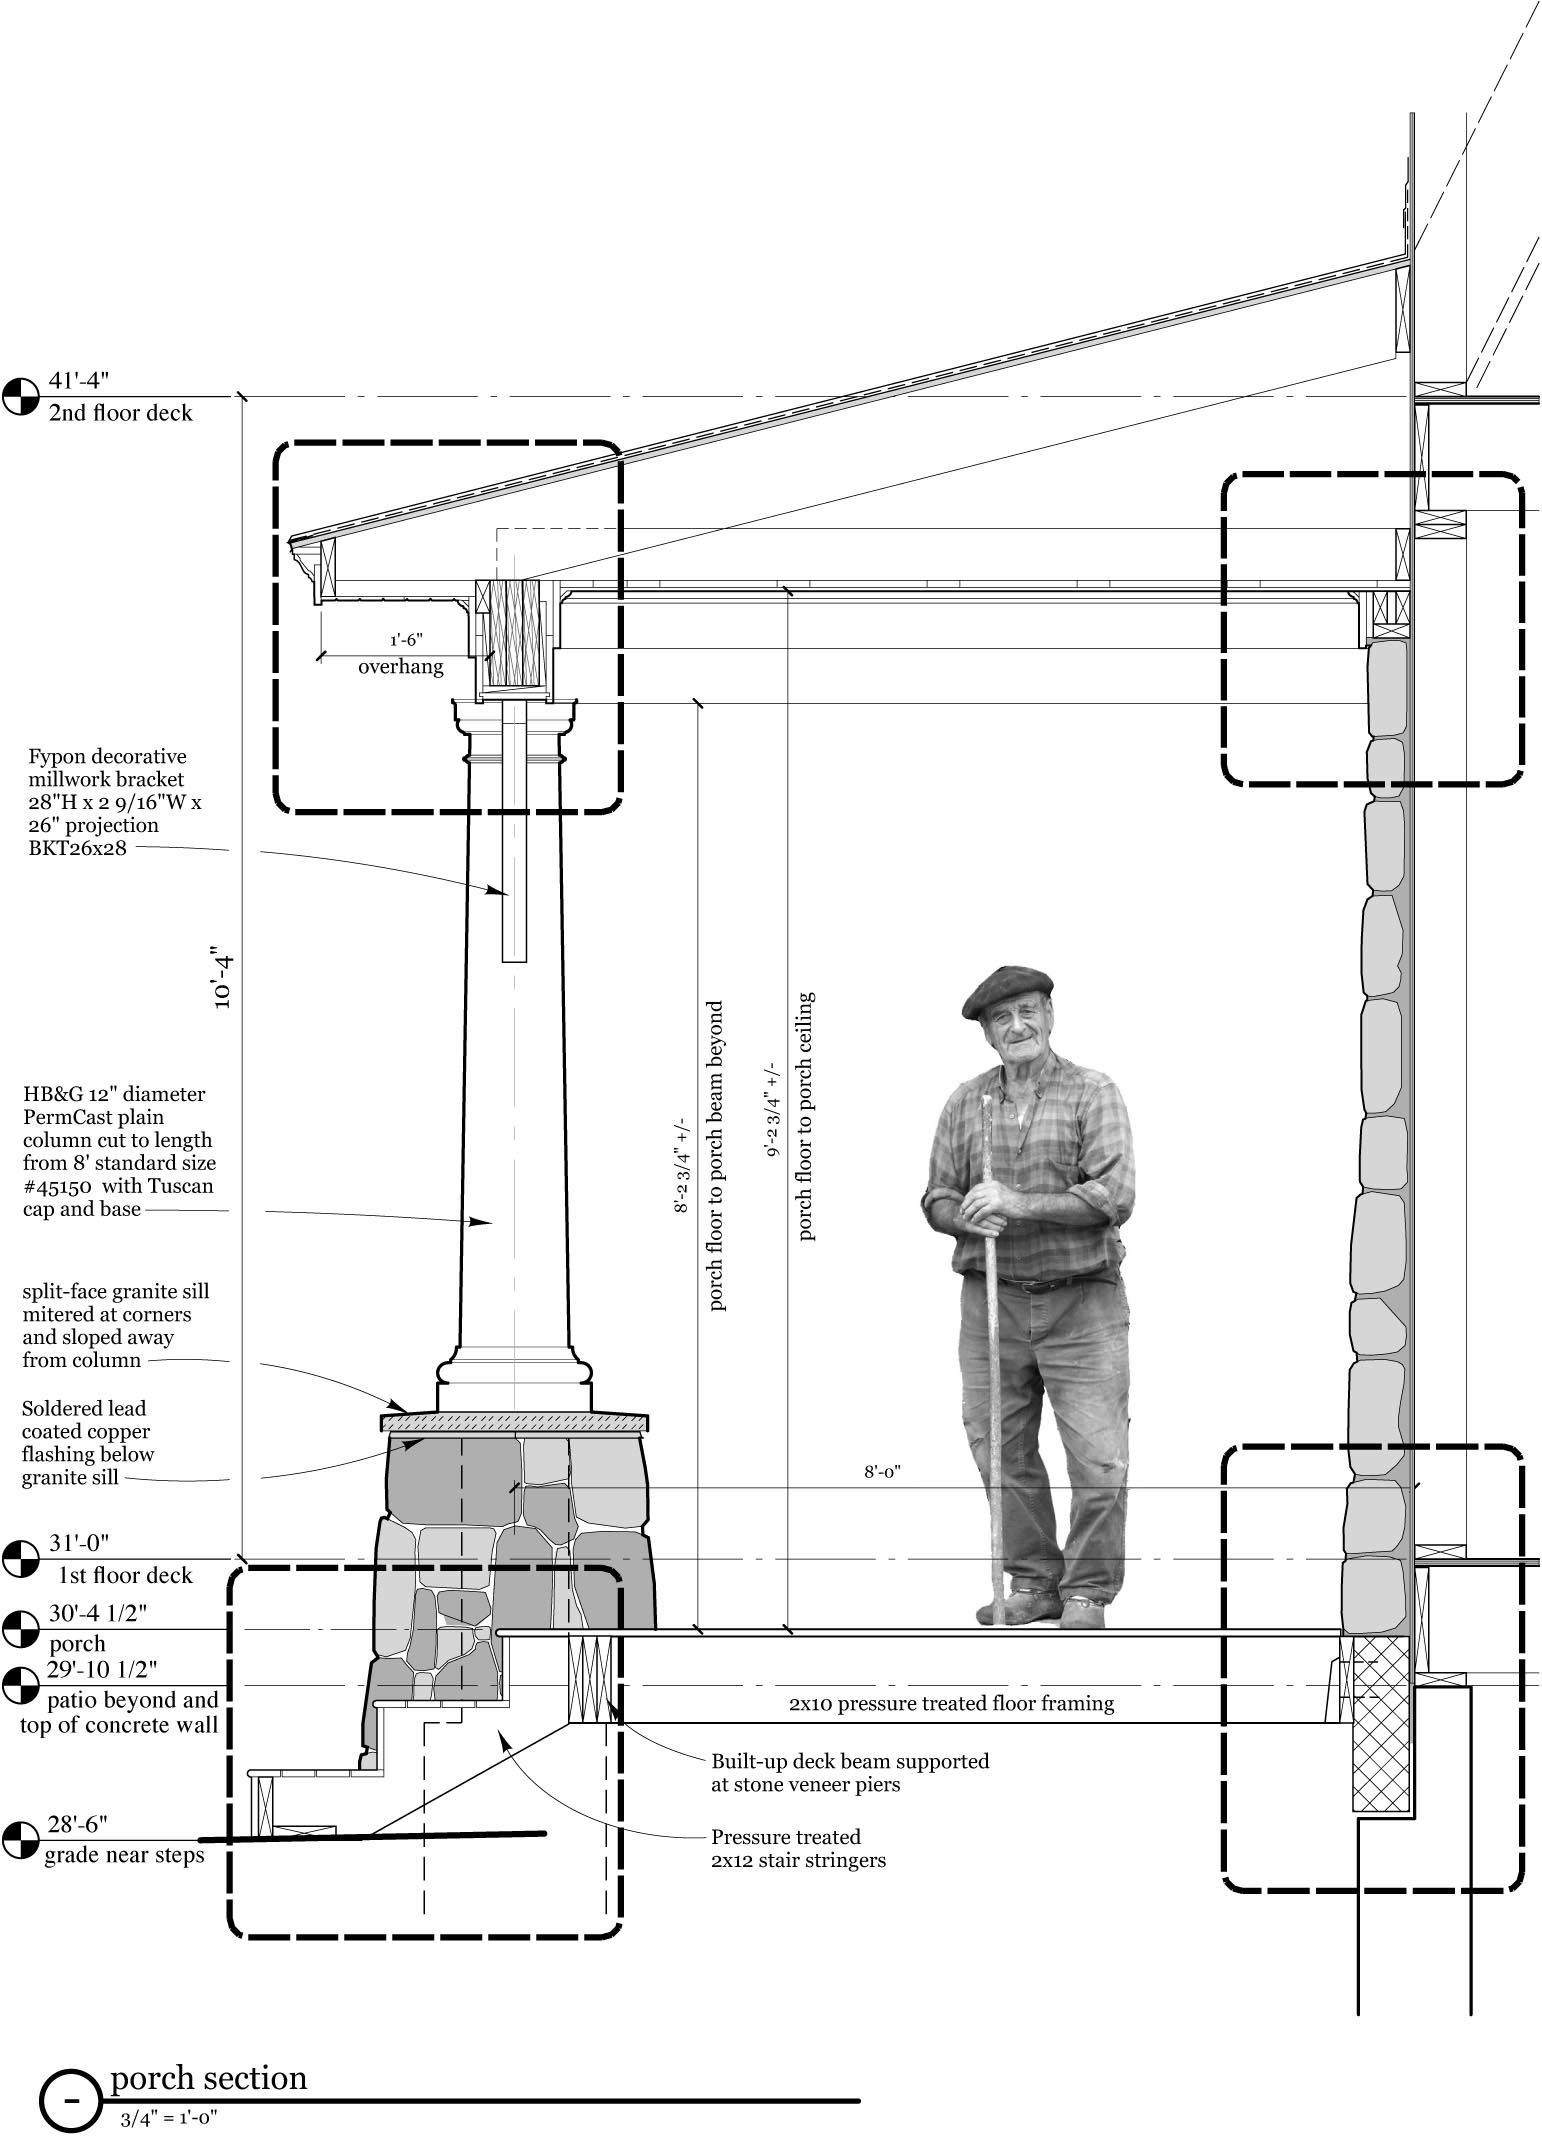 on millwork design drawings